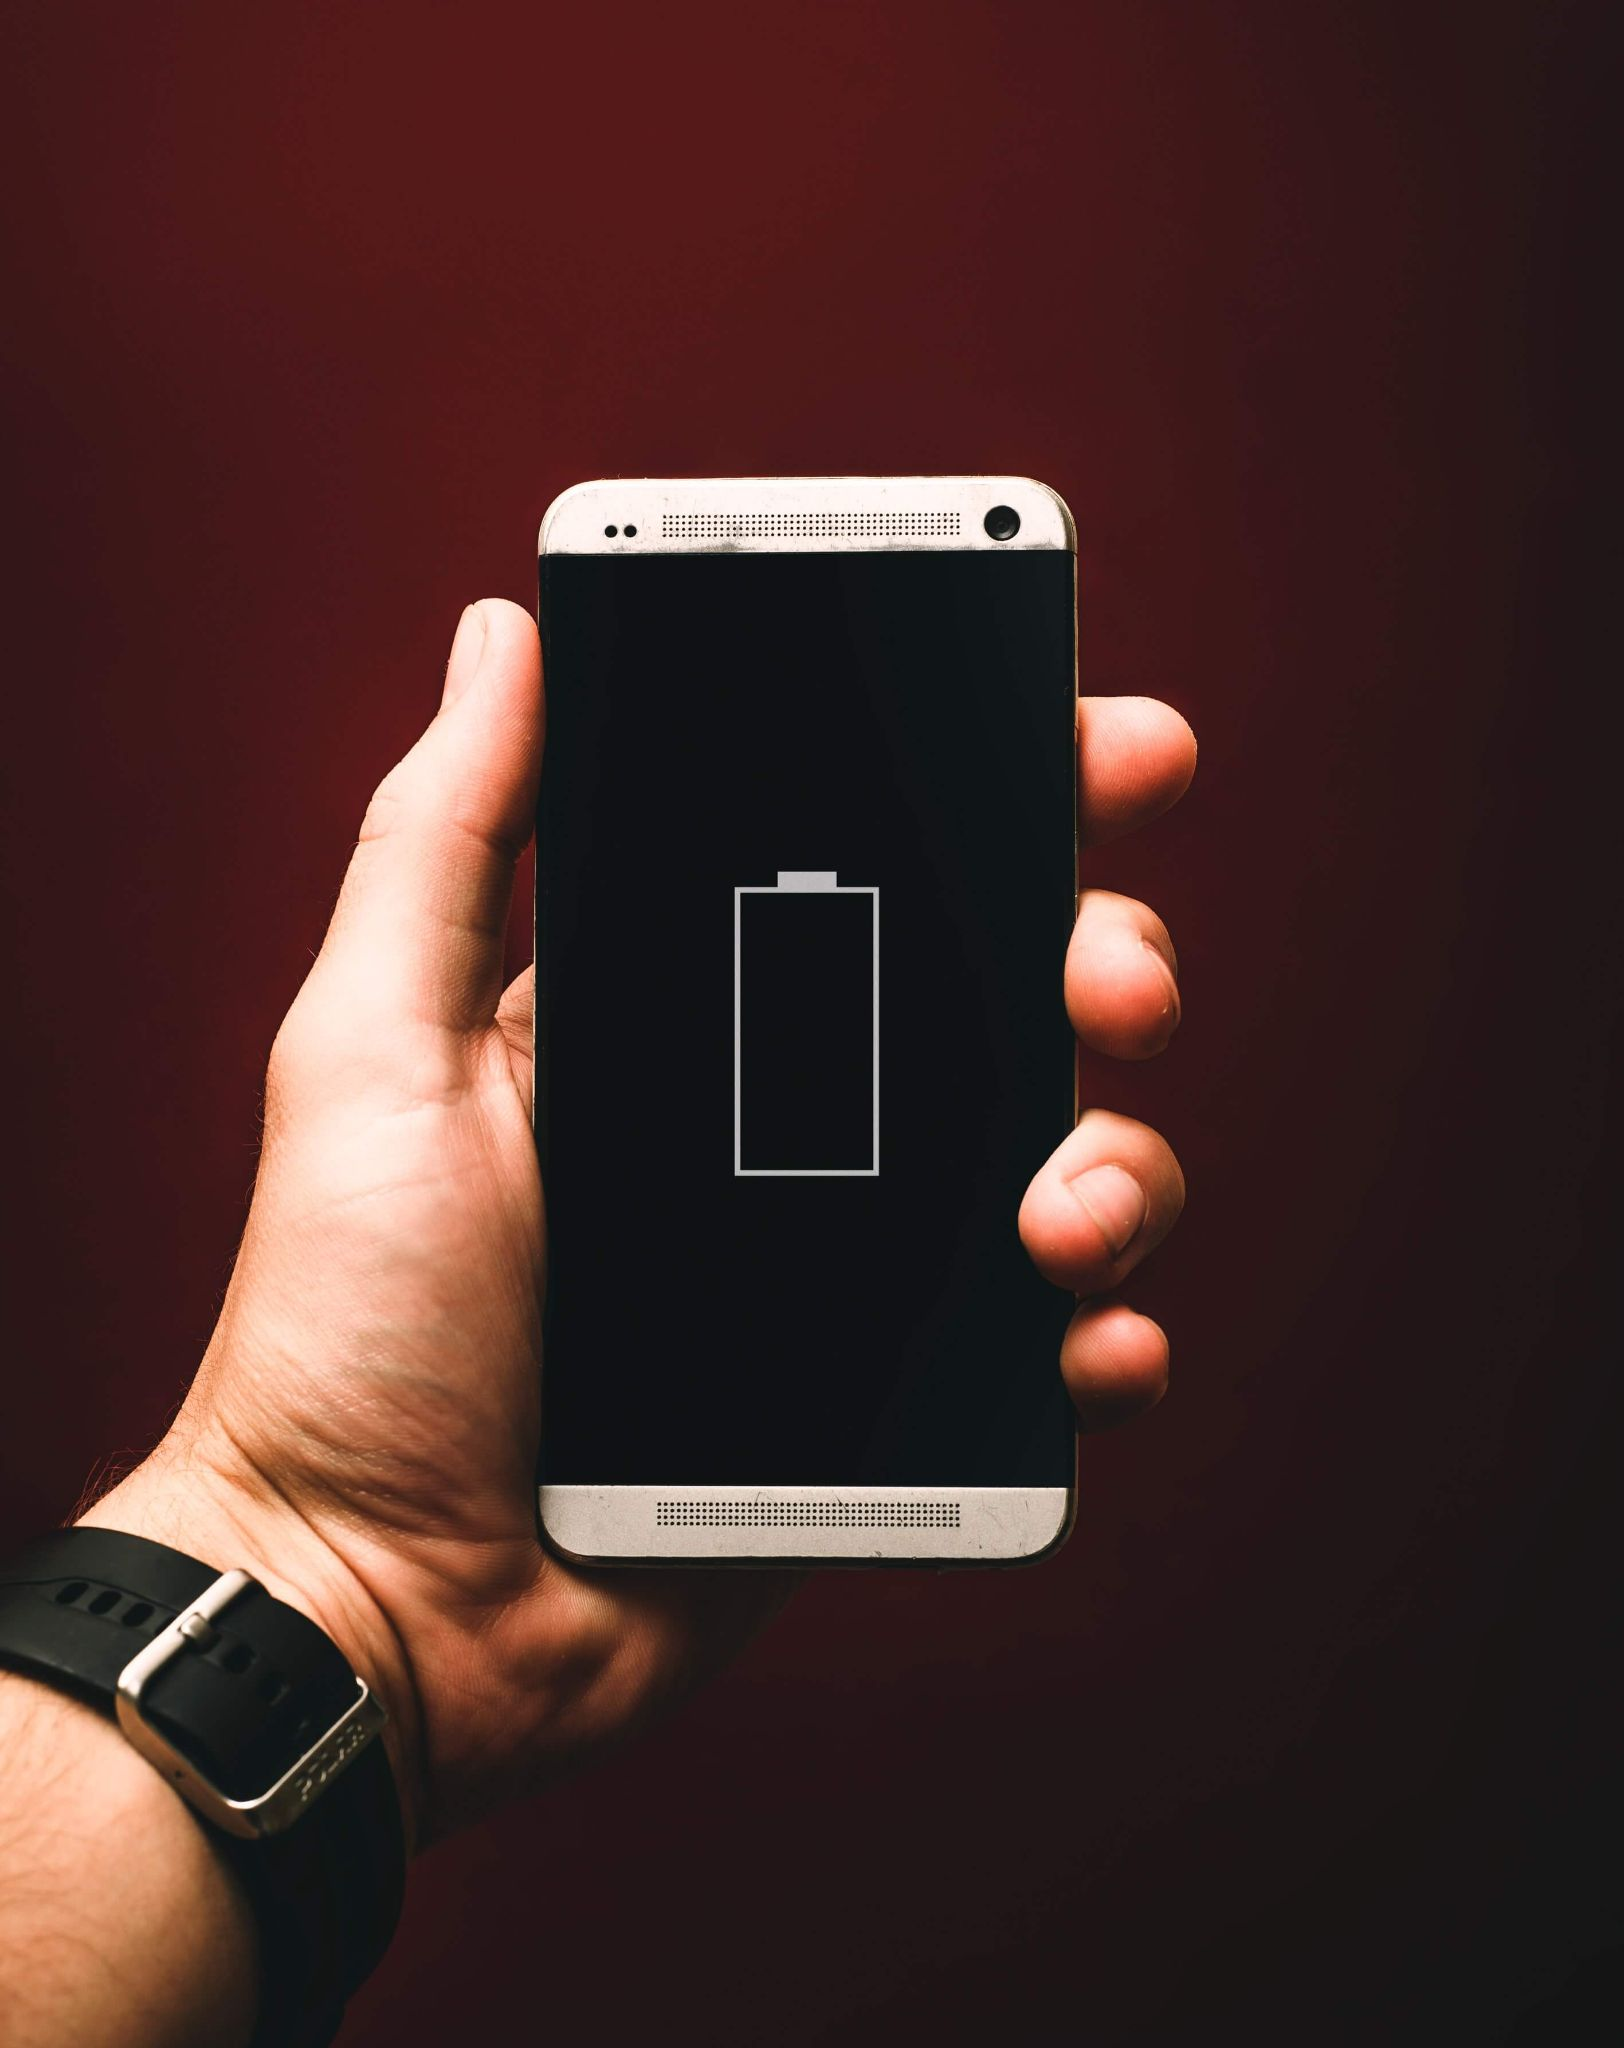 Phone Battery Low